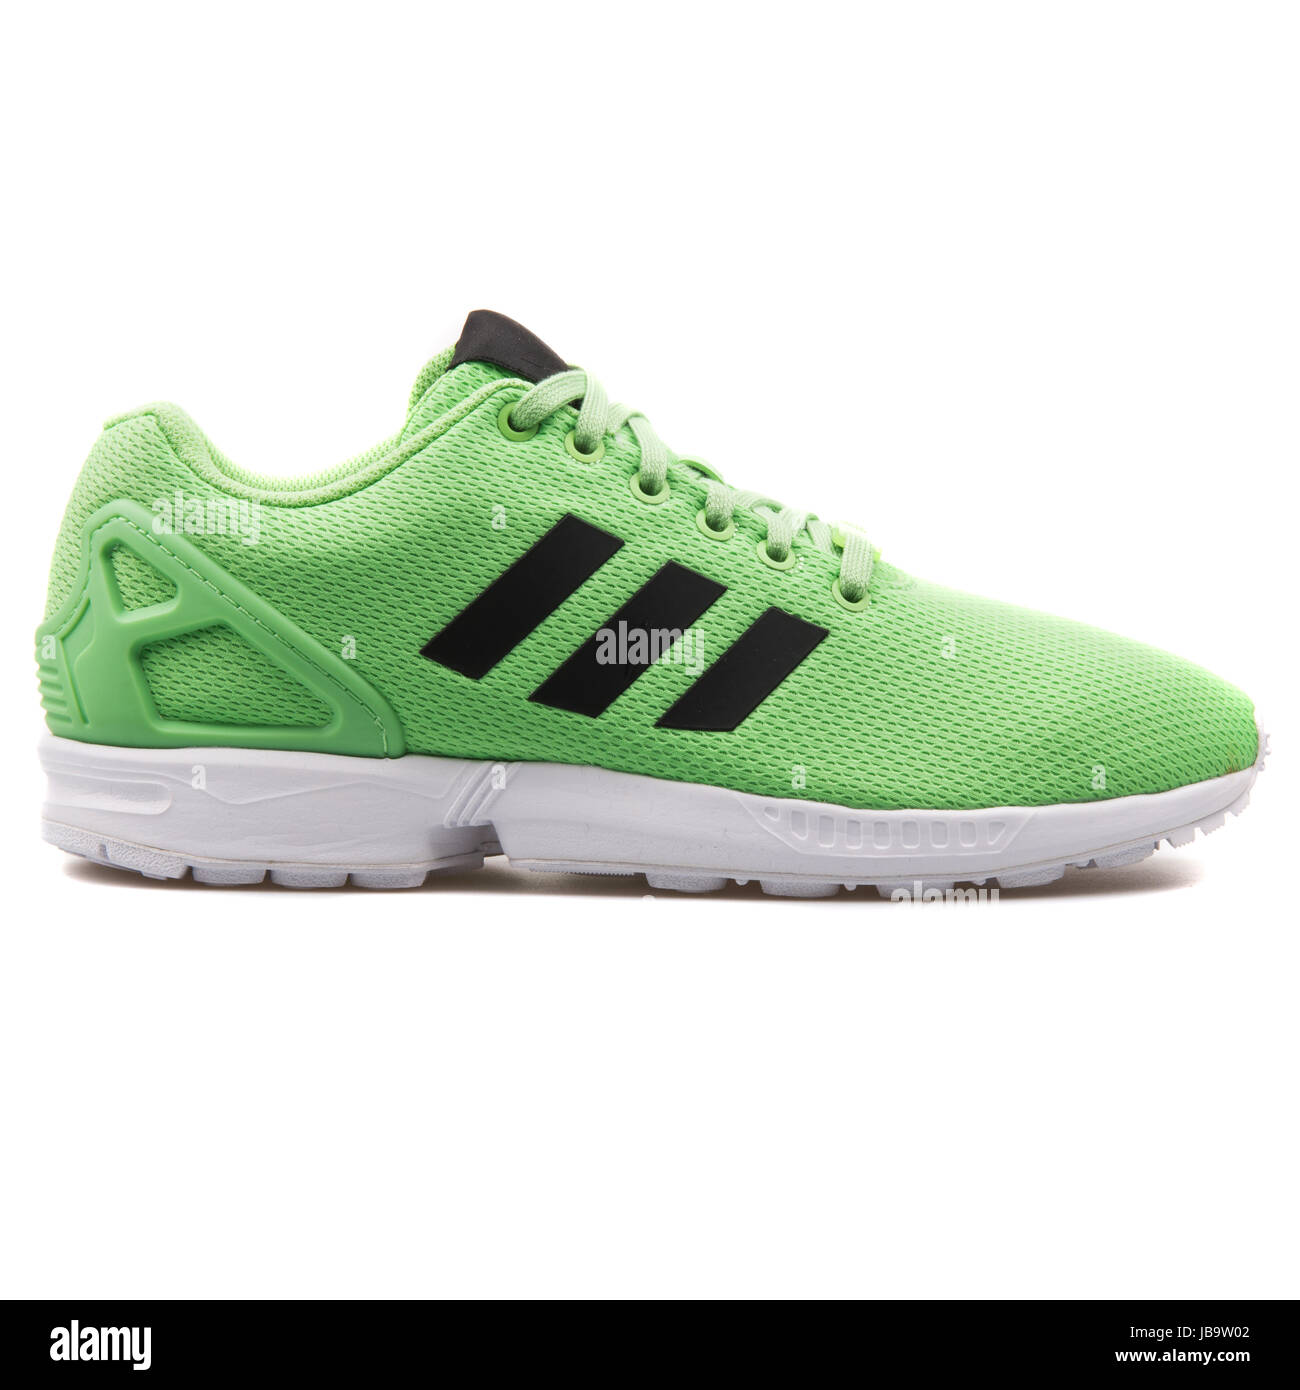 best loved 7432a 07f34 Adidas ZX Flux Green and White Men's Running Shoes - AF6345 ...